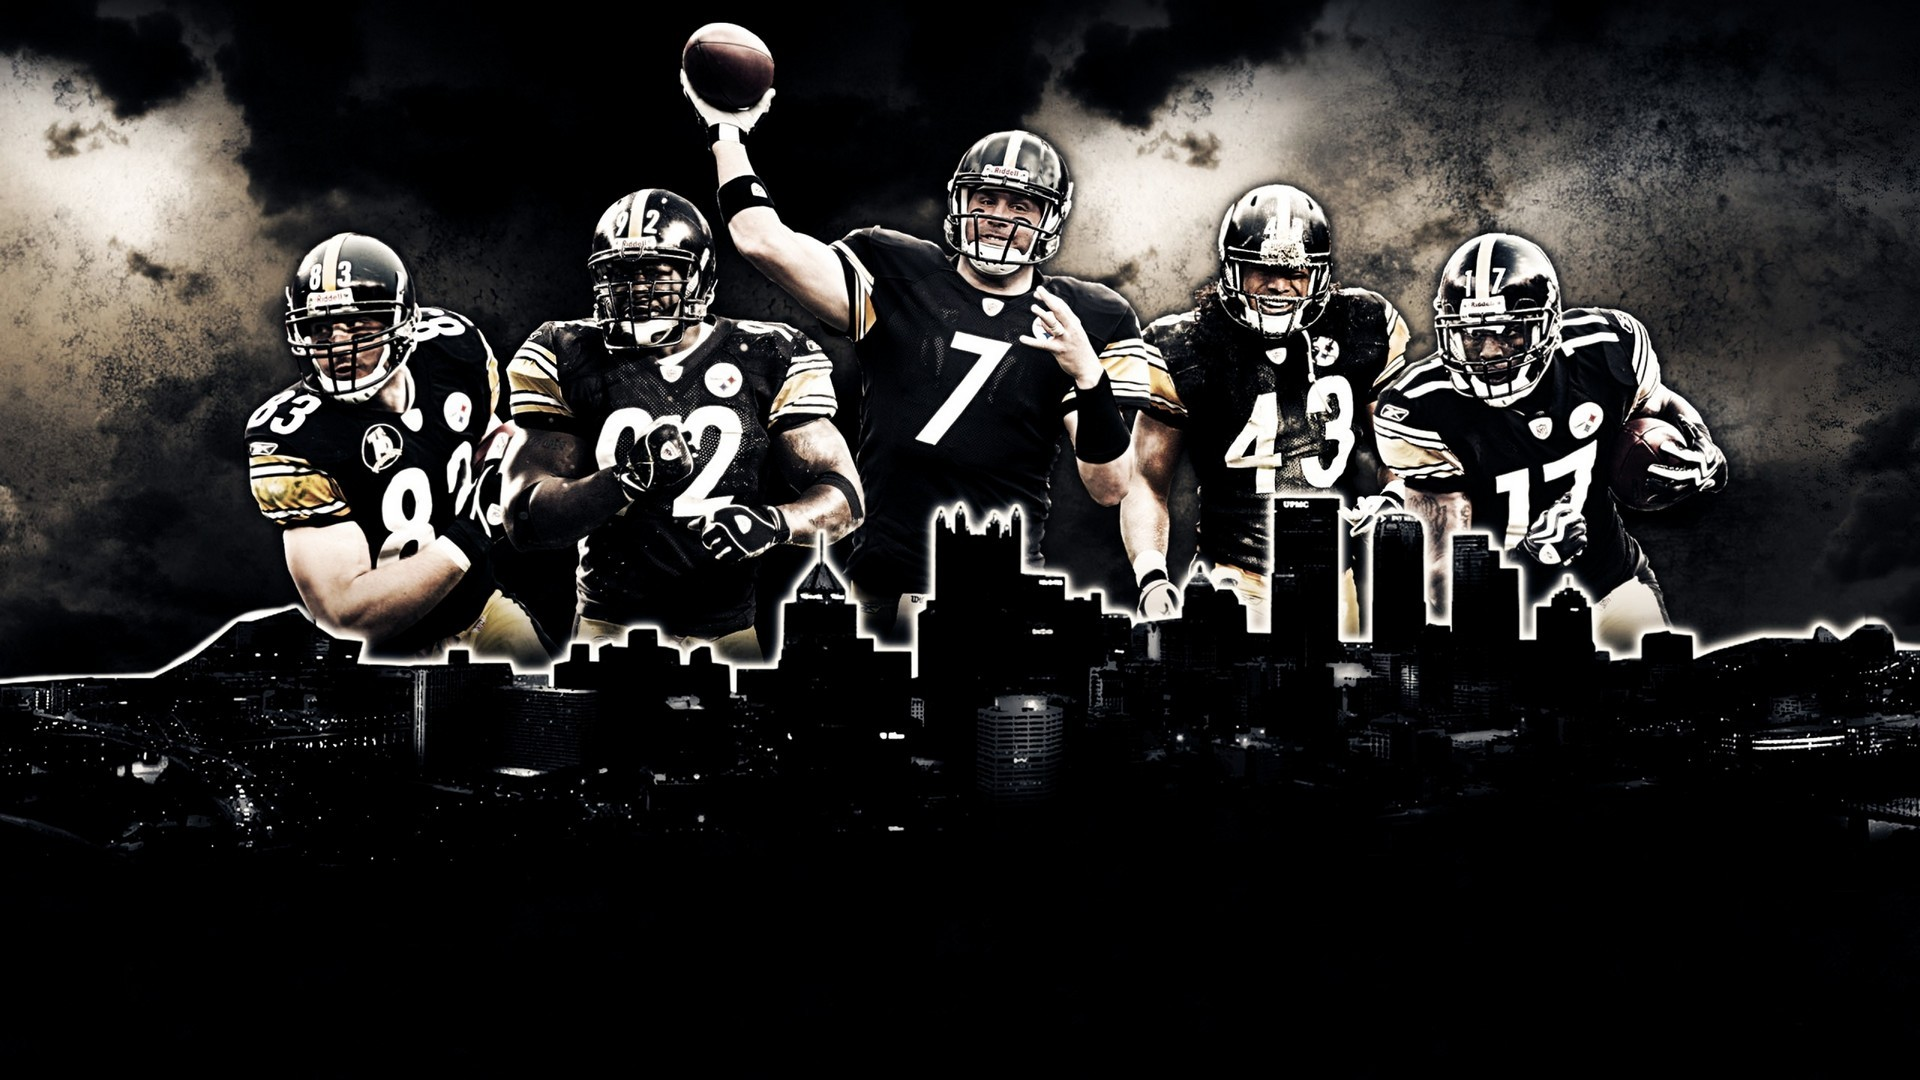 1920x1080 - Steelers Desktop 30